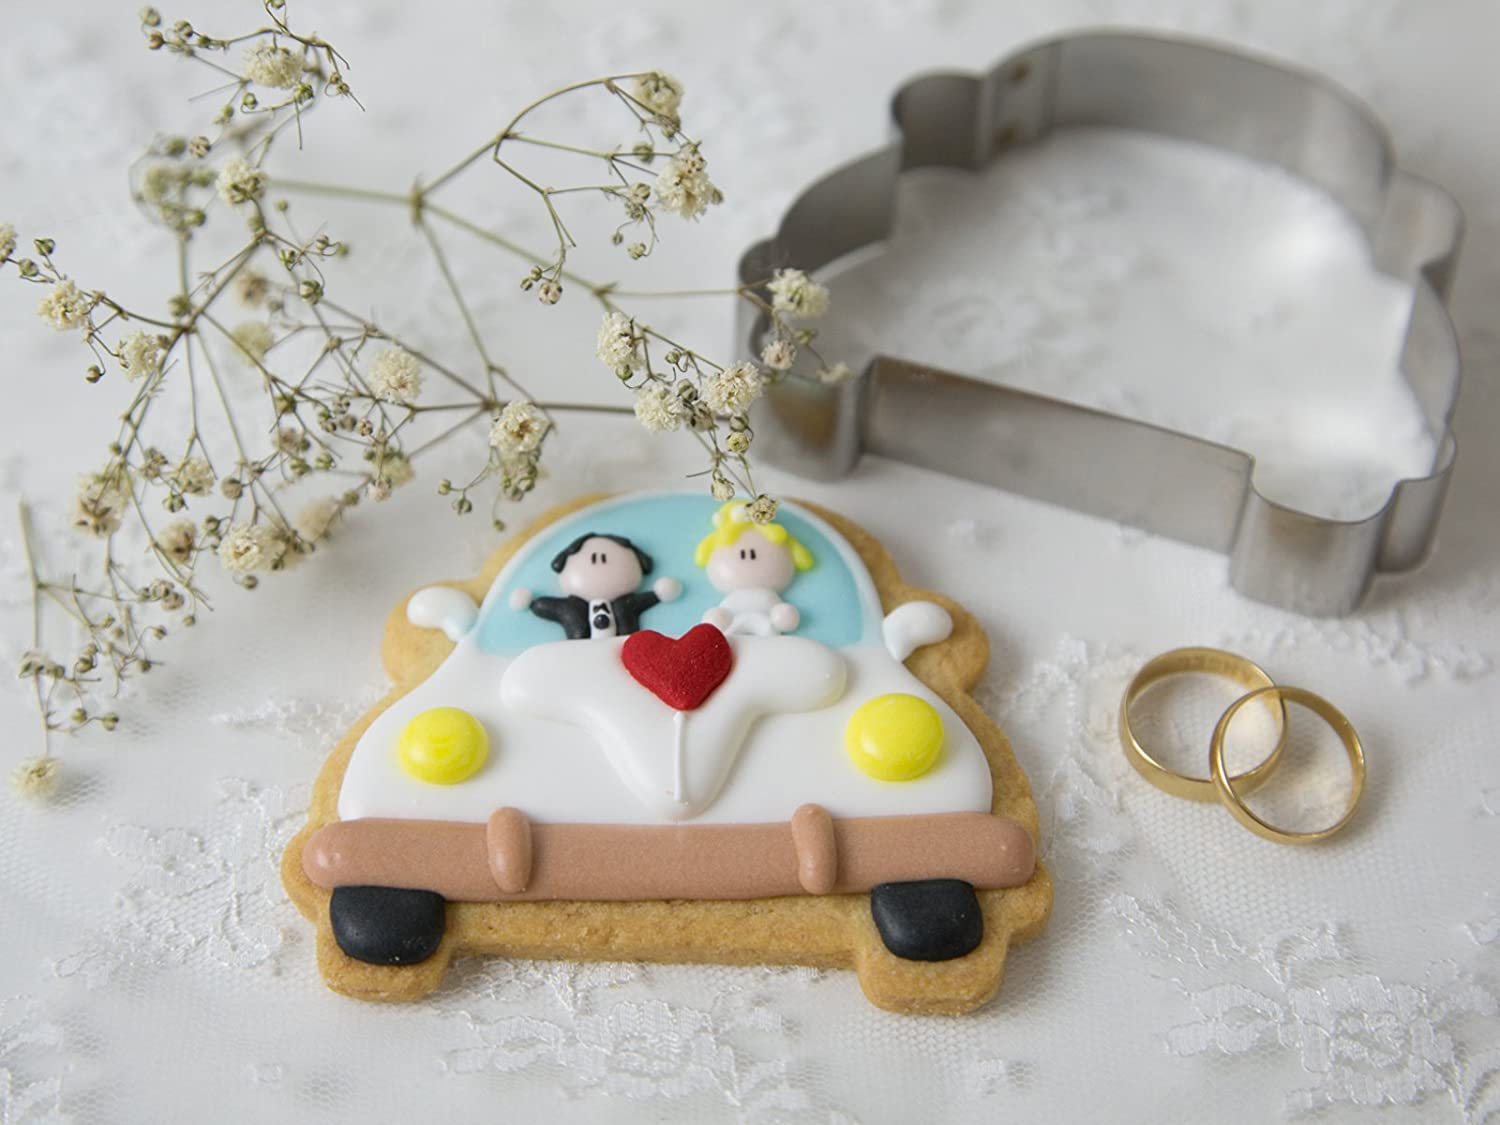 Stainless Steel 9 x 6 x 2 cm Silver decolordulce Wedding Car Cookie Cutter